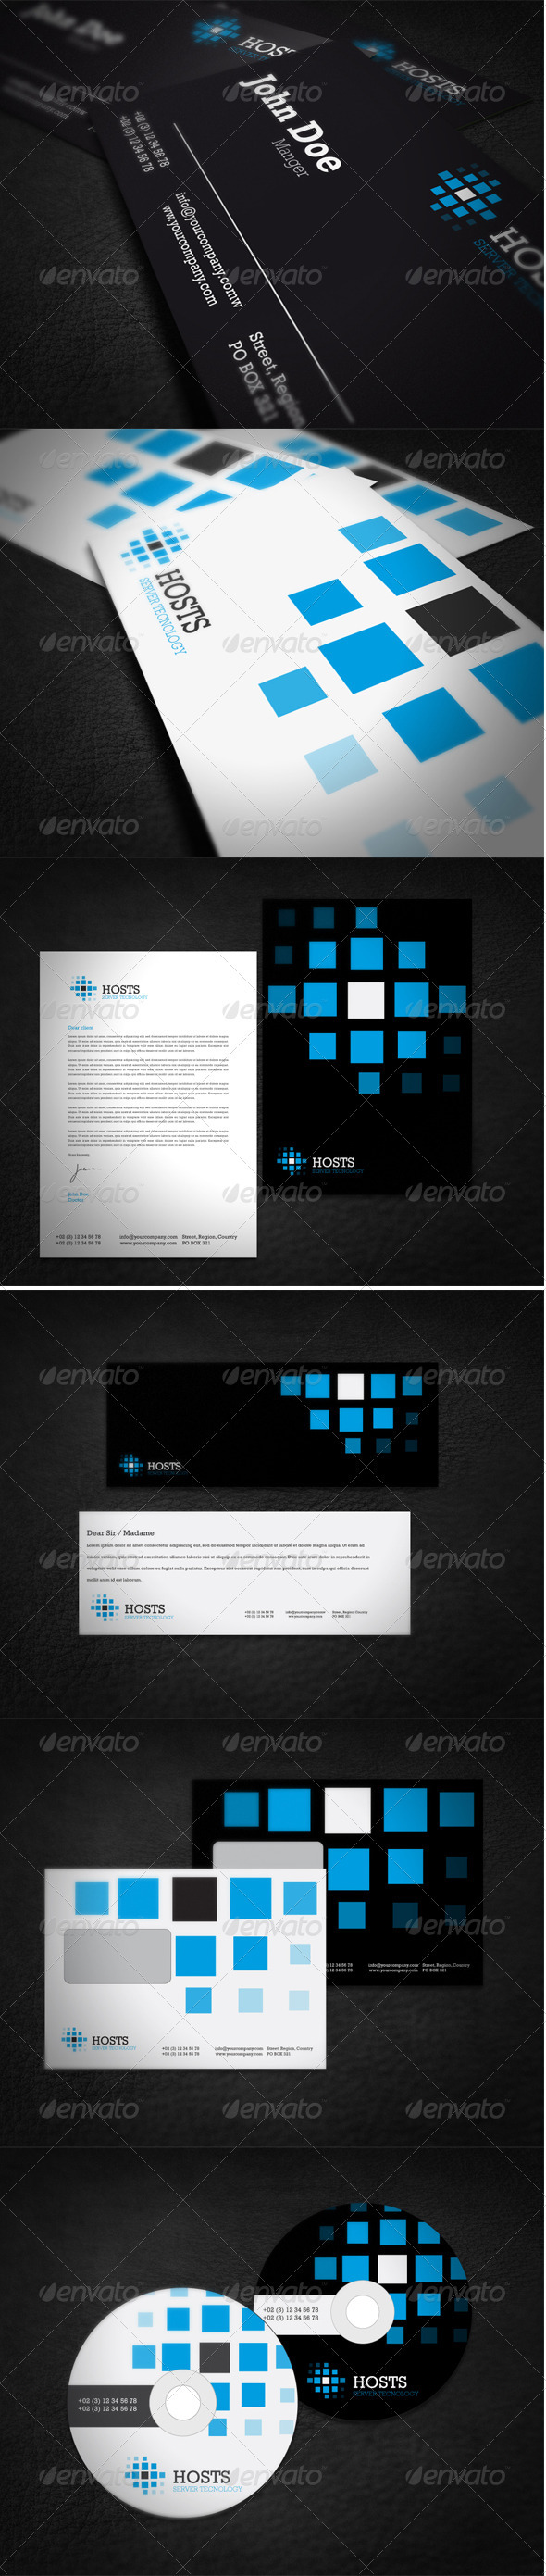 Hosting Company Corporate Identity - Stationery Print Templates